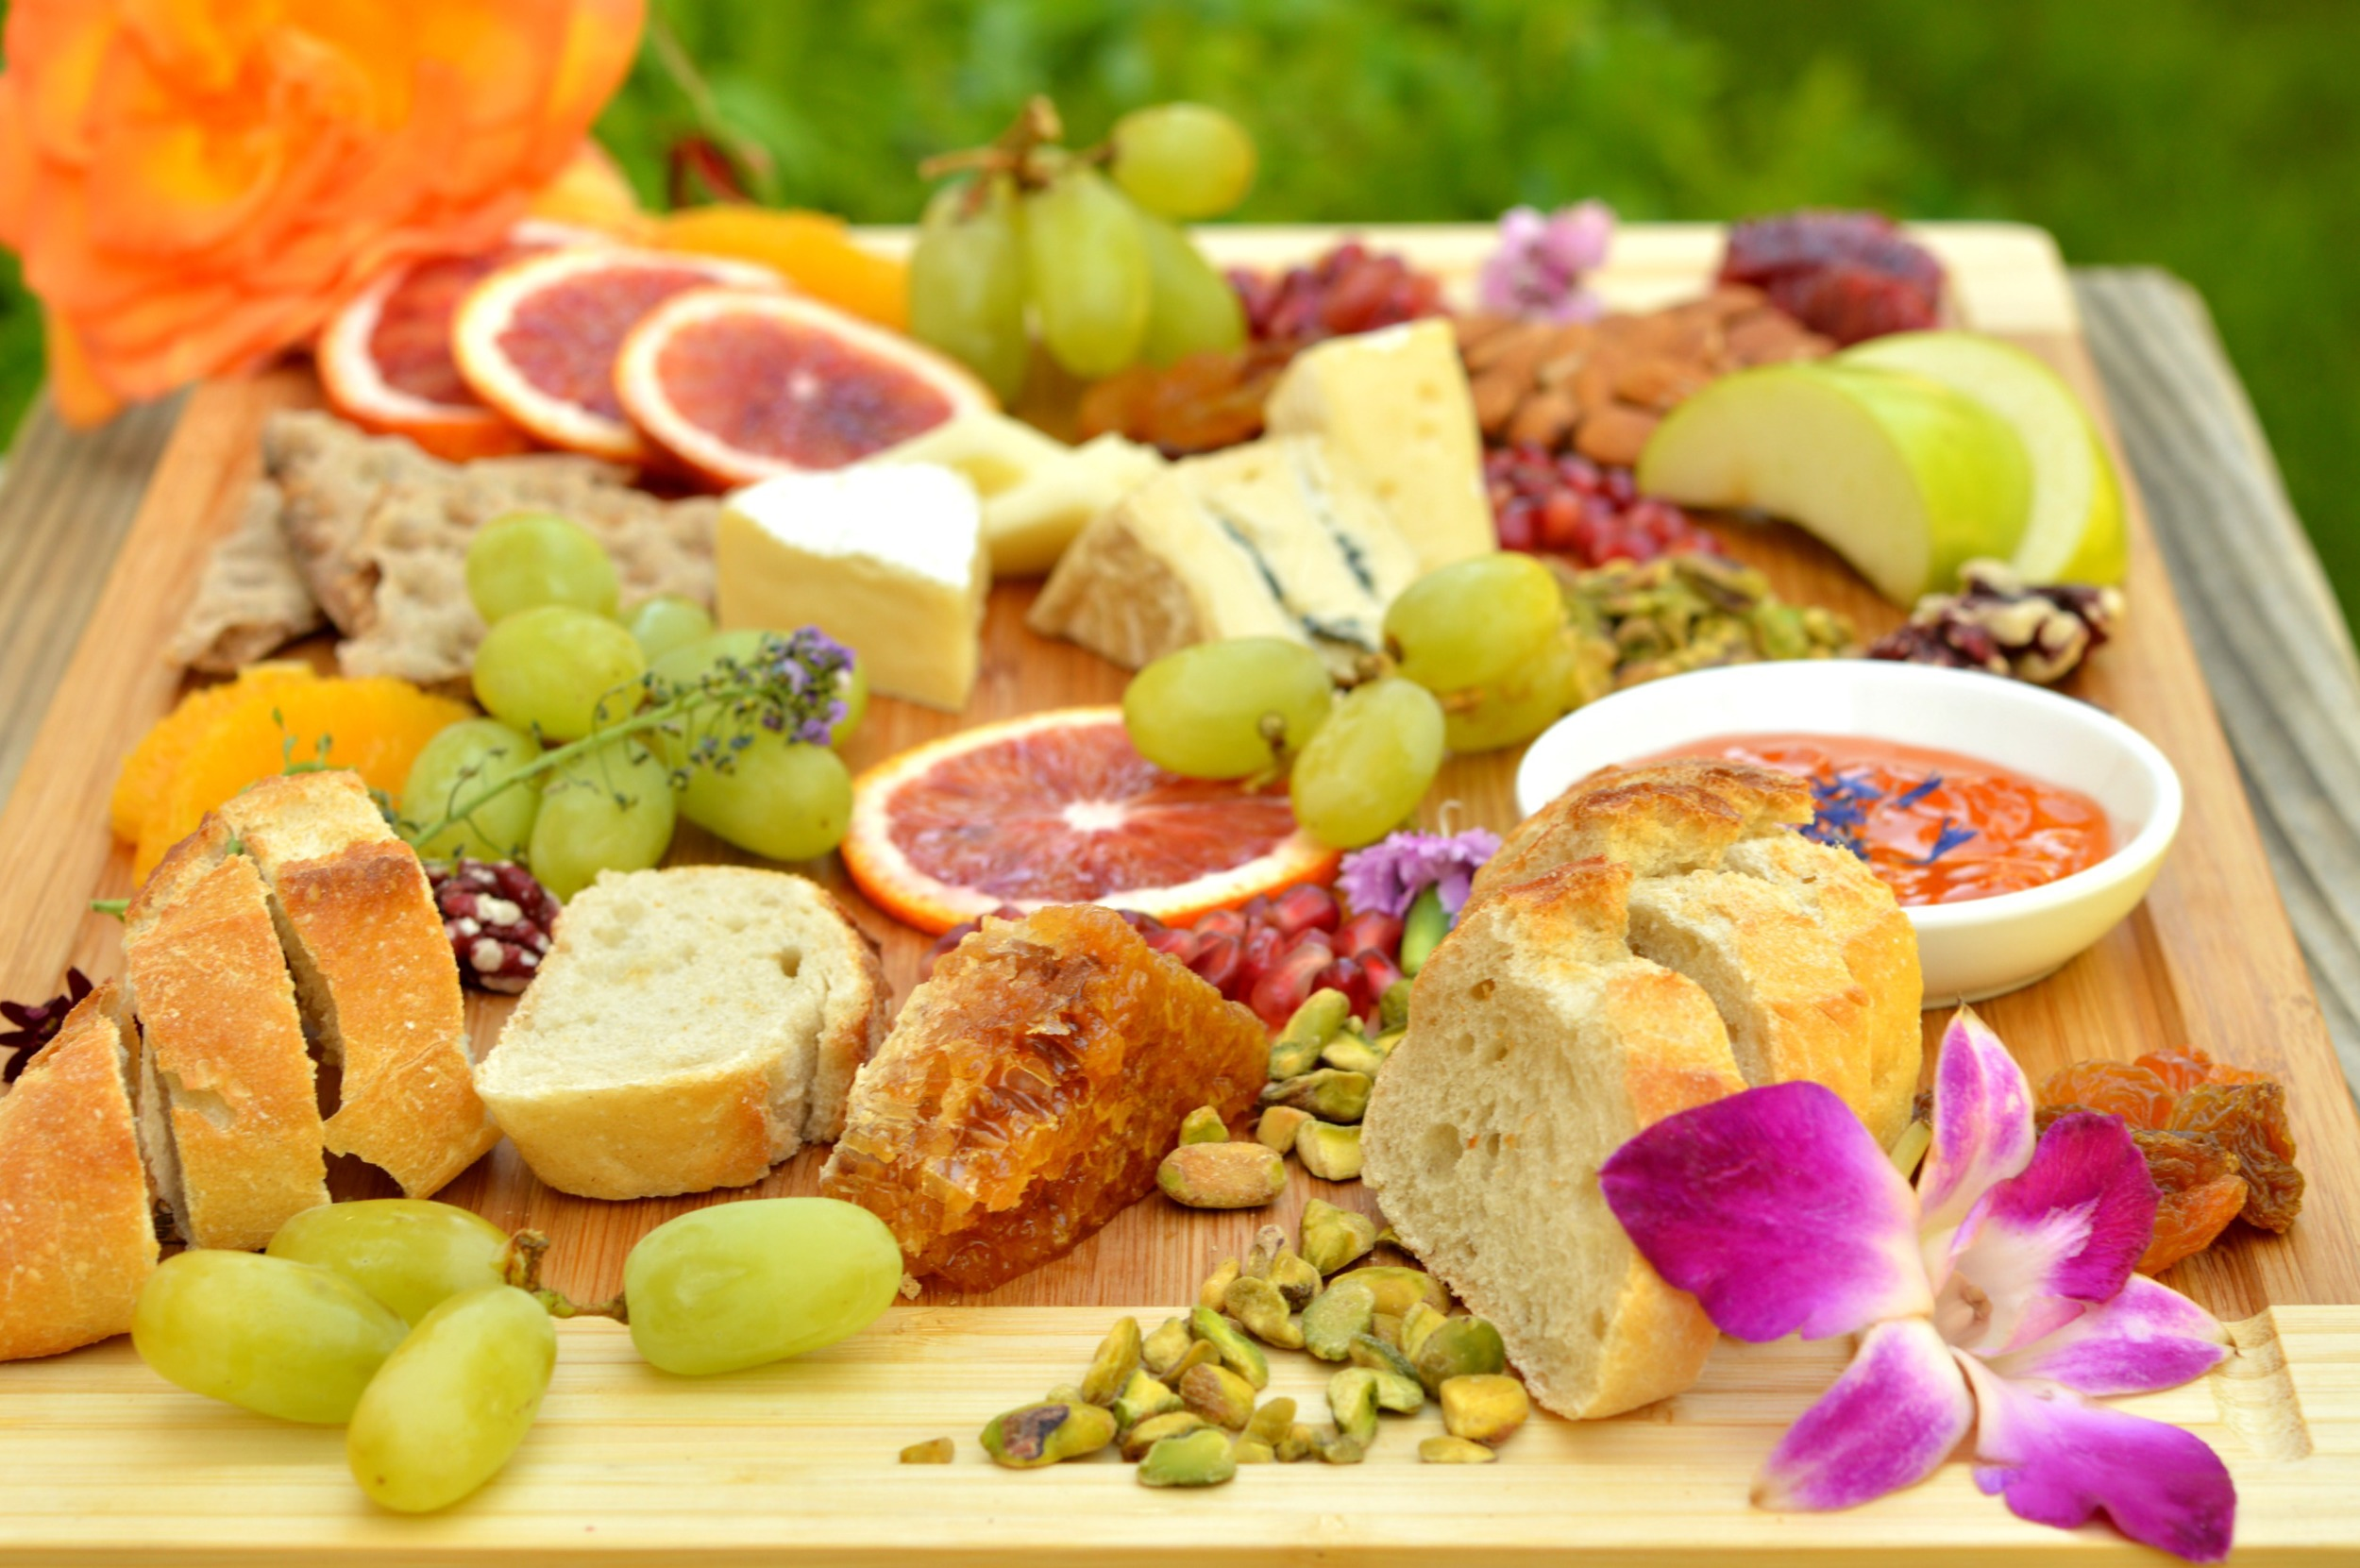 cheese plate flowers 3 26 2015.jpg